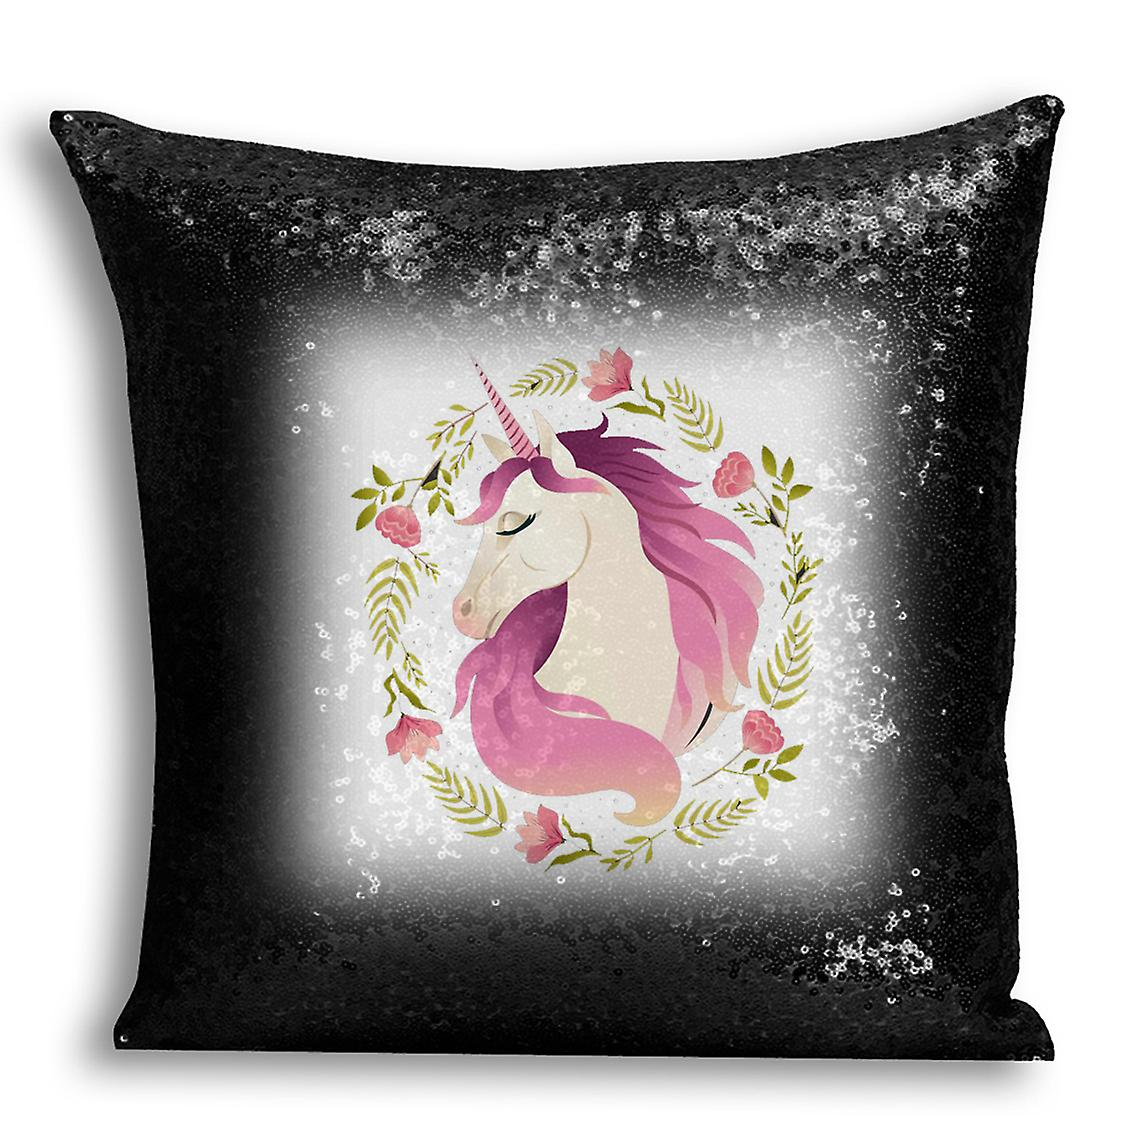 I Home Design Sequin Decor For CushionPillow Black tronixsUnicorn Printed 9 Cover 54ARLj